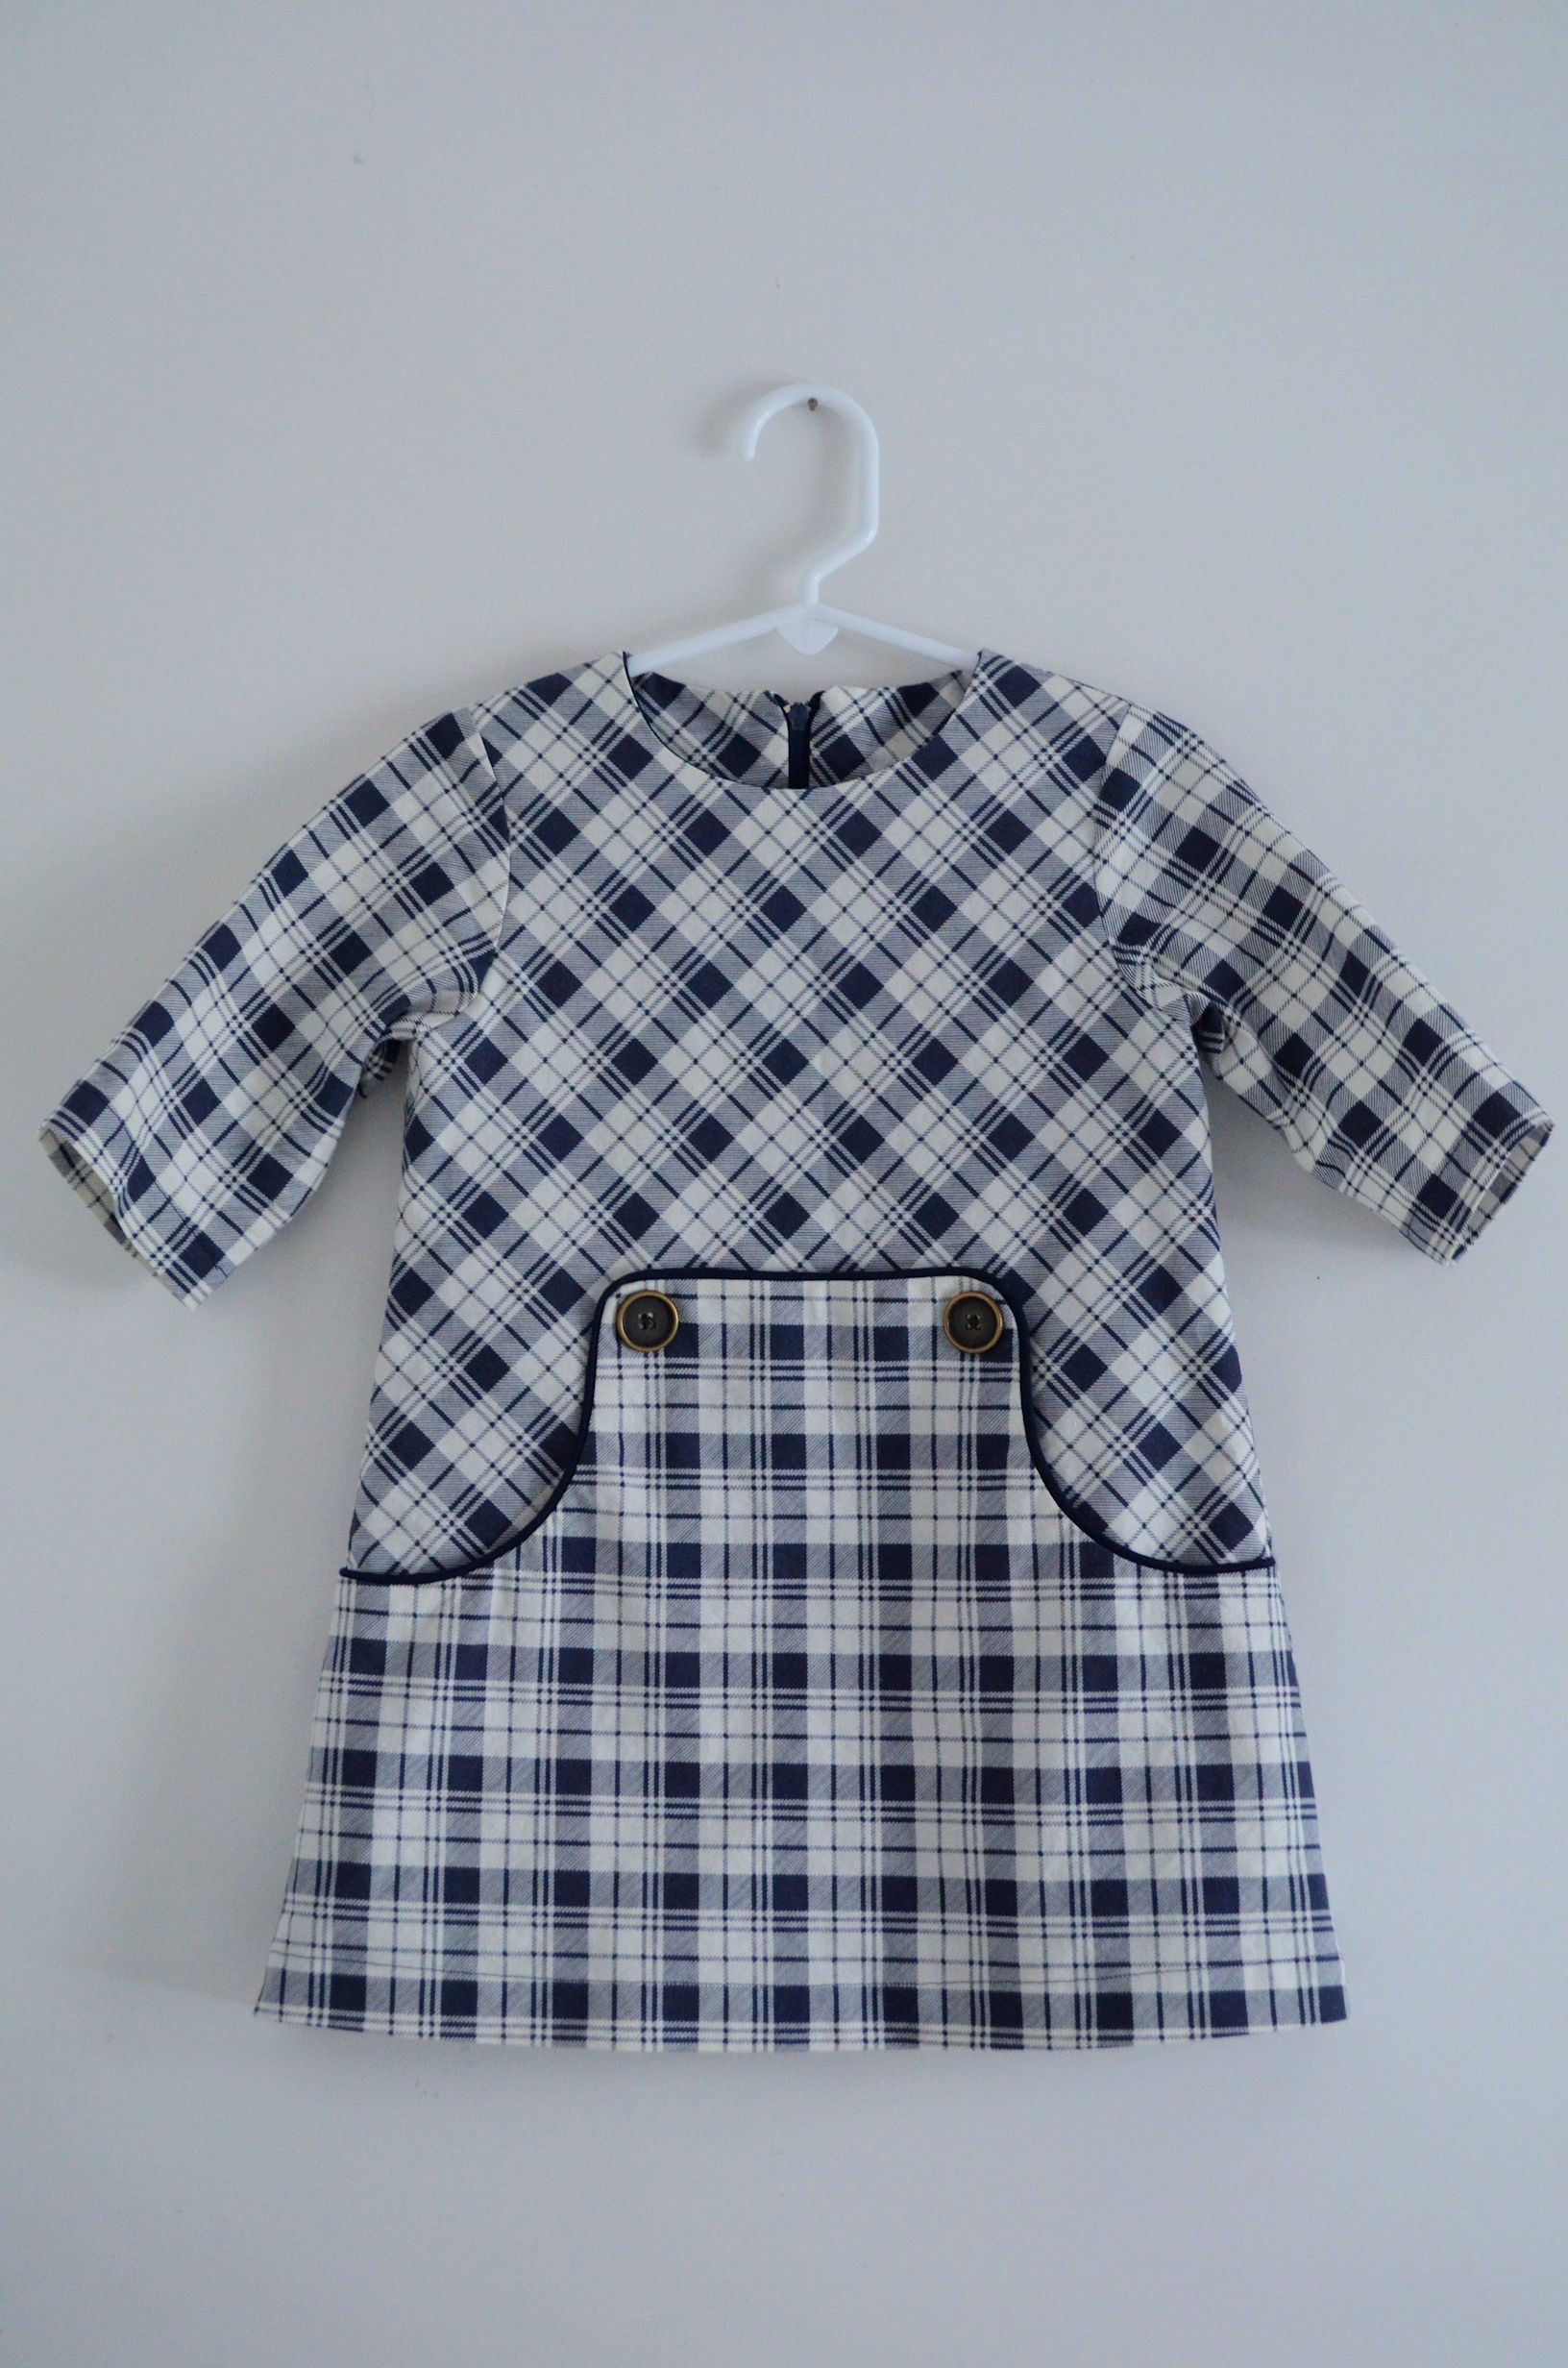 Companie M dress, love the plaid going in different directions.